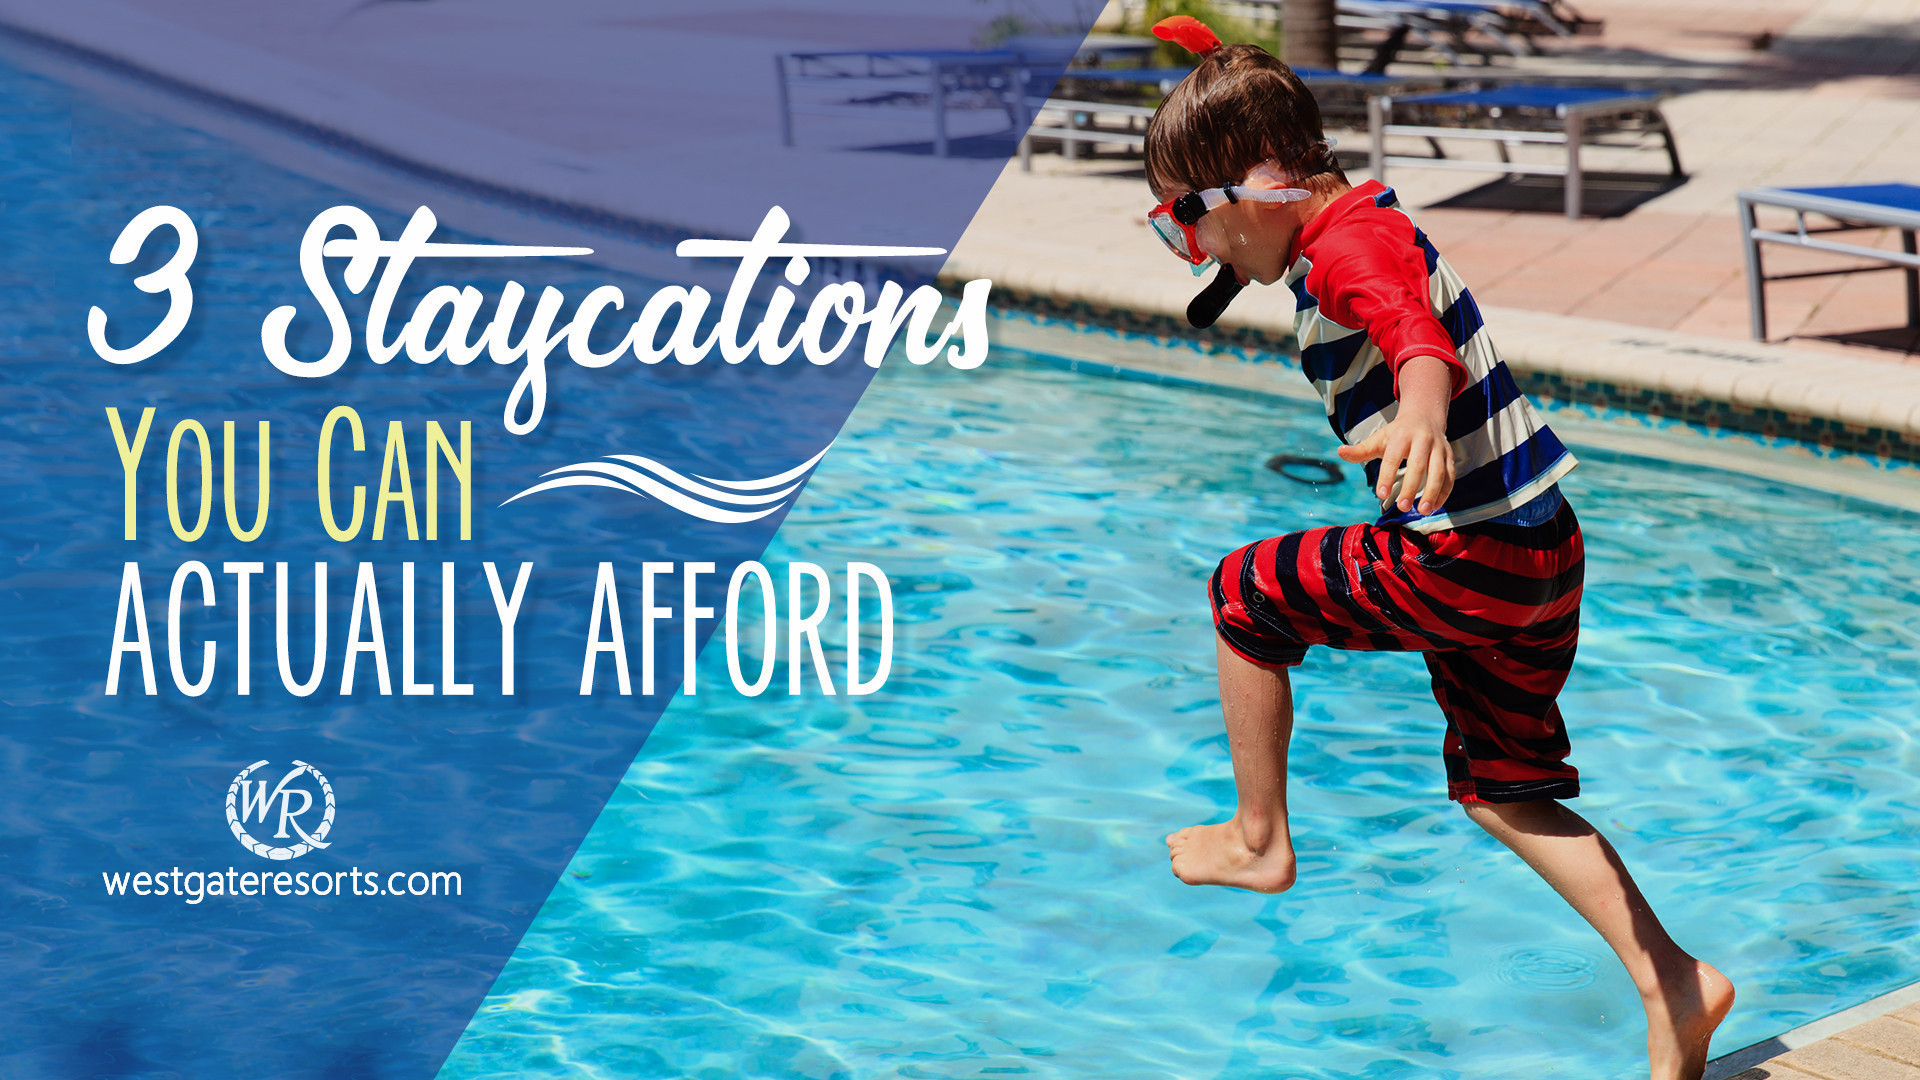 3 Hotel Staycation Promotions This Summer You Can Afford | Hotel Staycation Promotion | Westgate Resorts